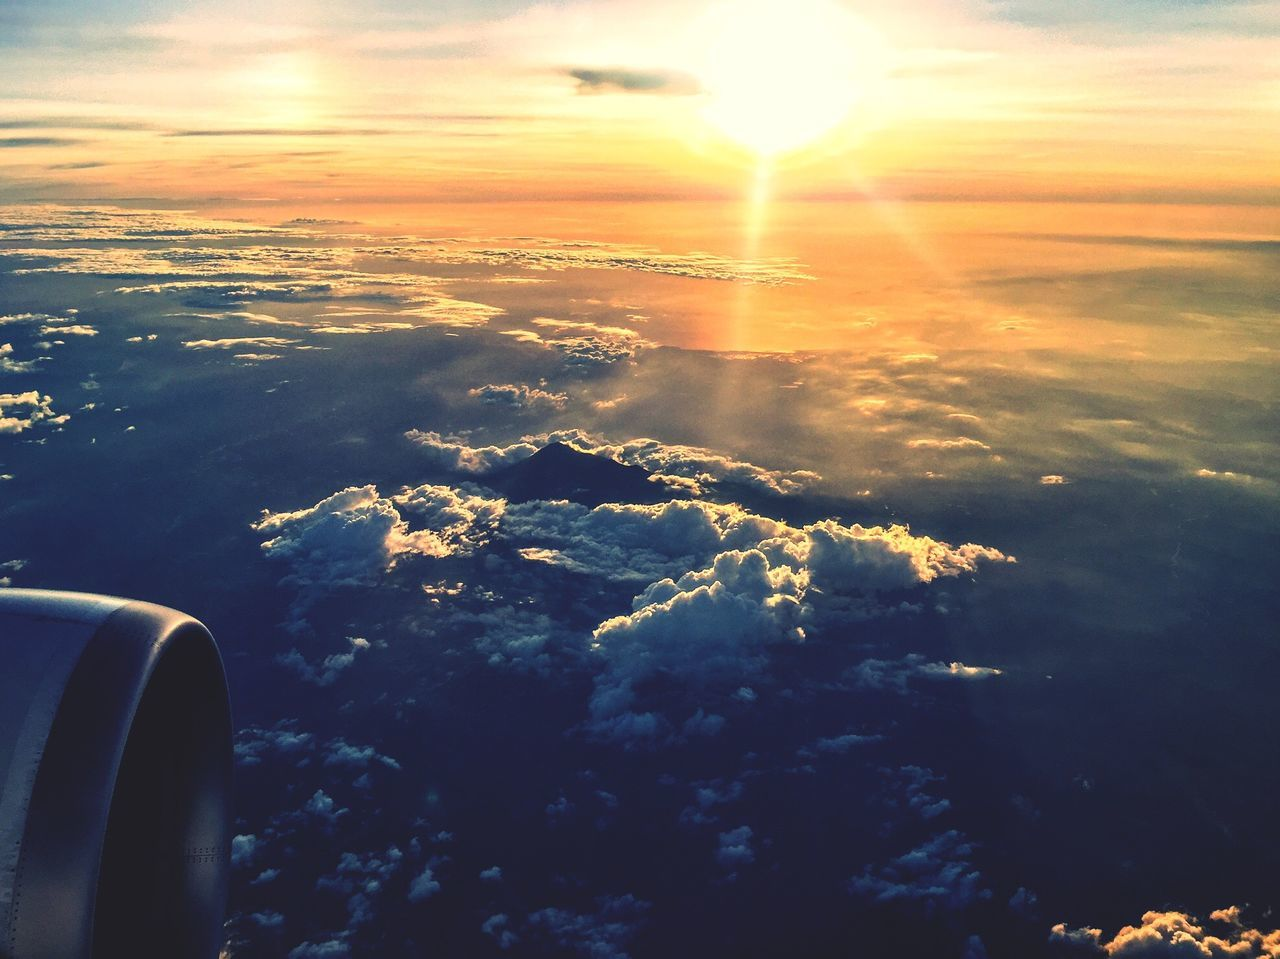 """On Air"" Hello World Check This Out EyeEm Gallery Flight ✈ Flight Flightscape Across The Sky Philippines Horizon Sunset Mountains And Sky Clouds And Sky Sunset #sun #clouds #skylovers #sky #nature #beautifulinnature #naturalbeauty #photography #landscape Philippine Airline"